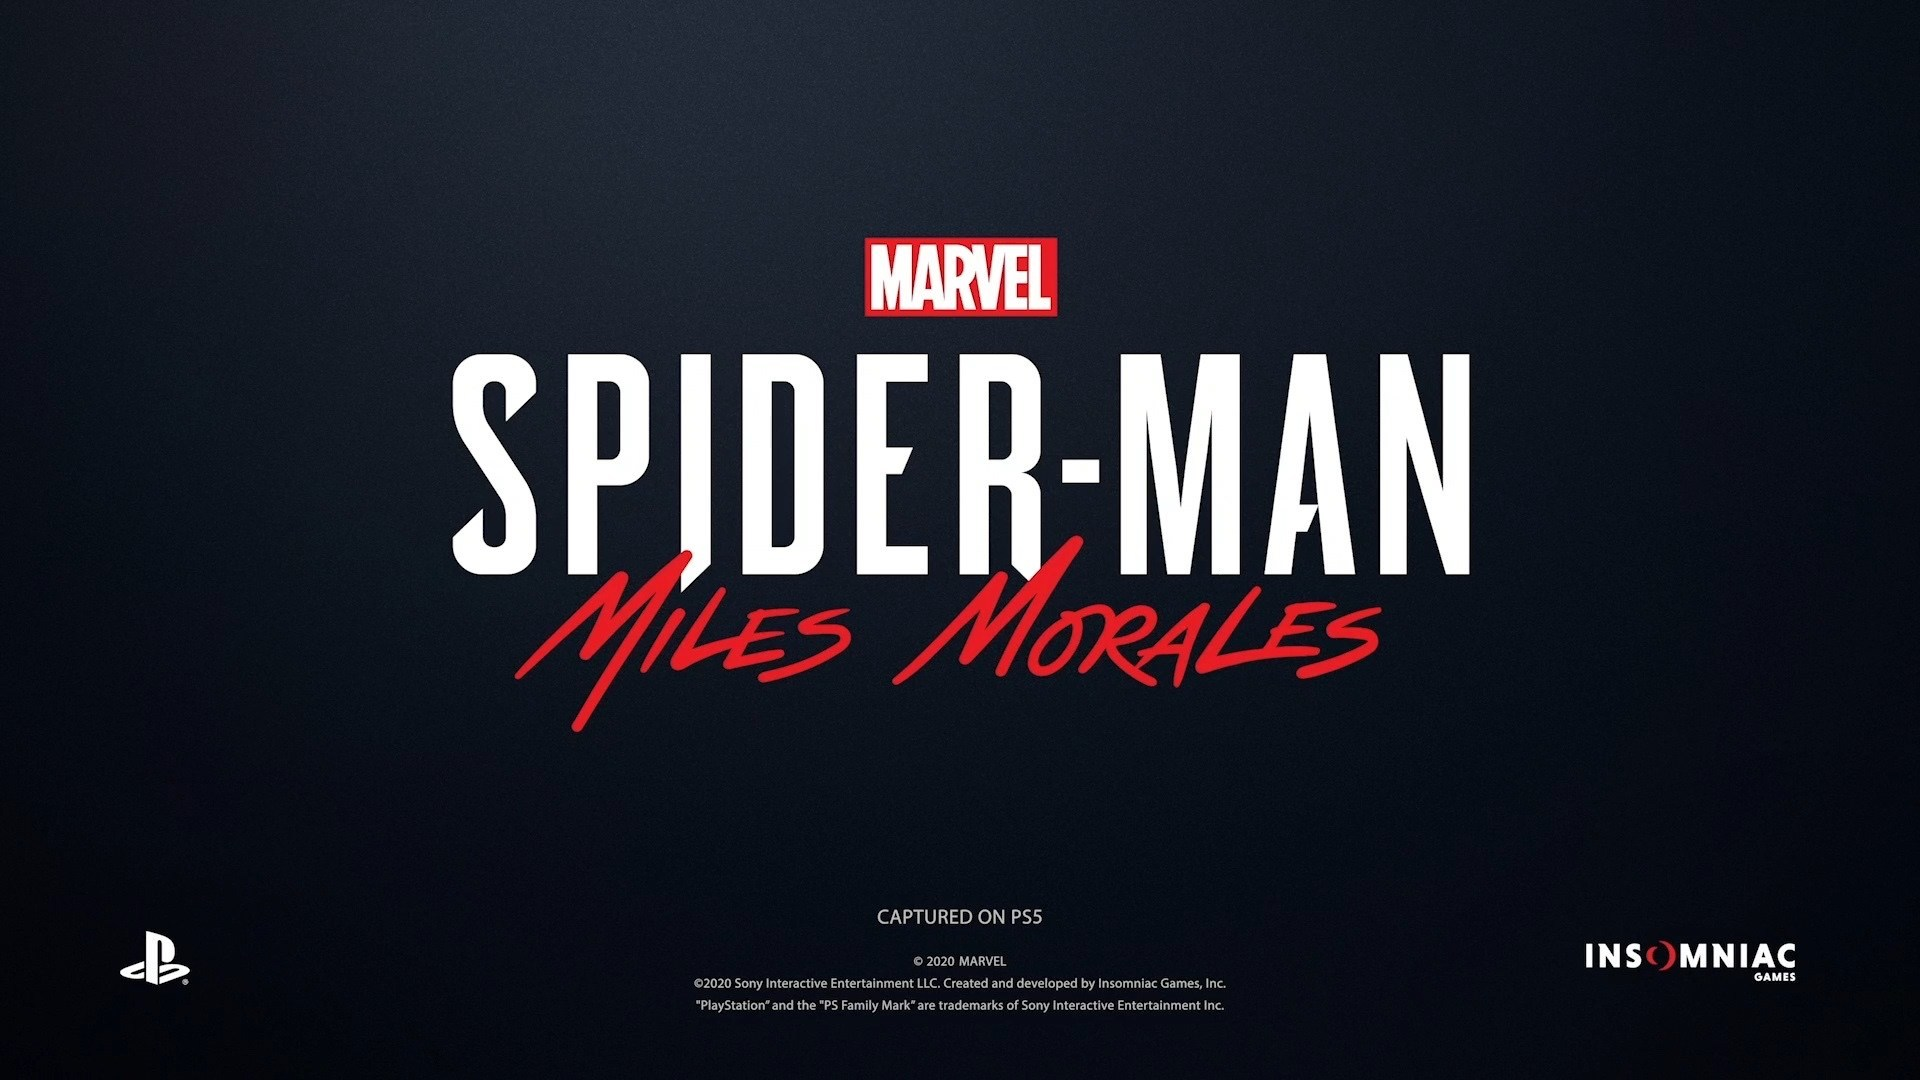 Marvel's Spider-Man: Miles Morales Announced